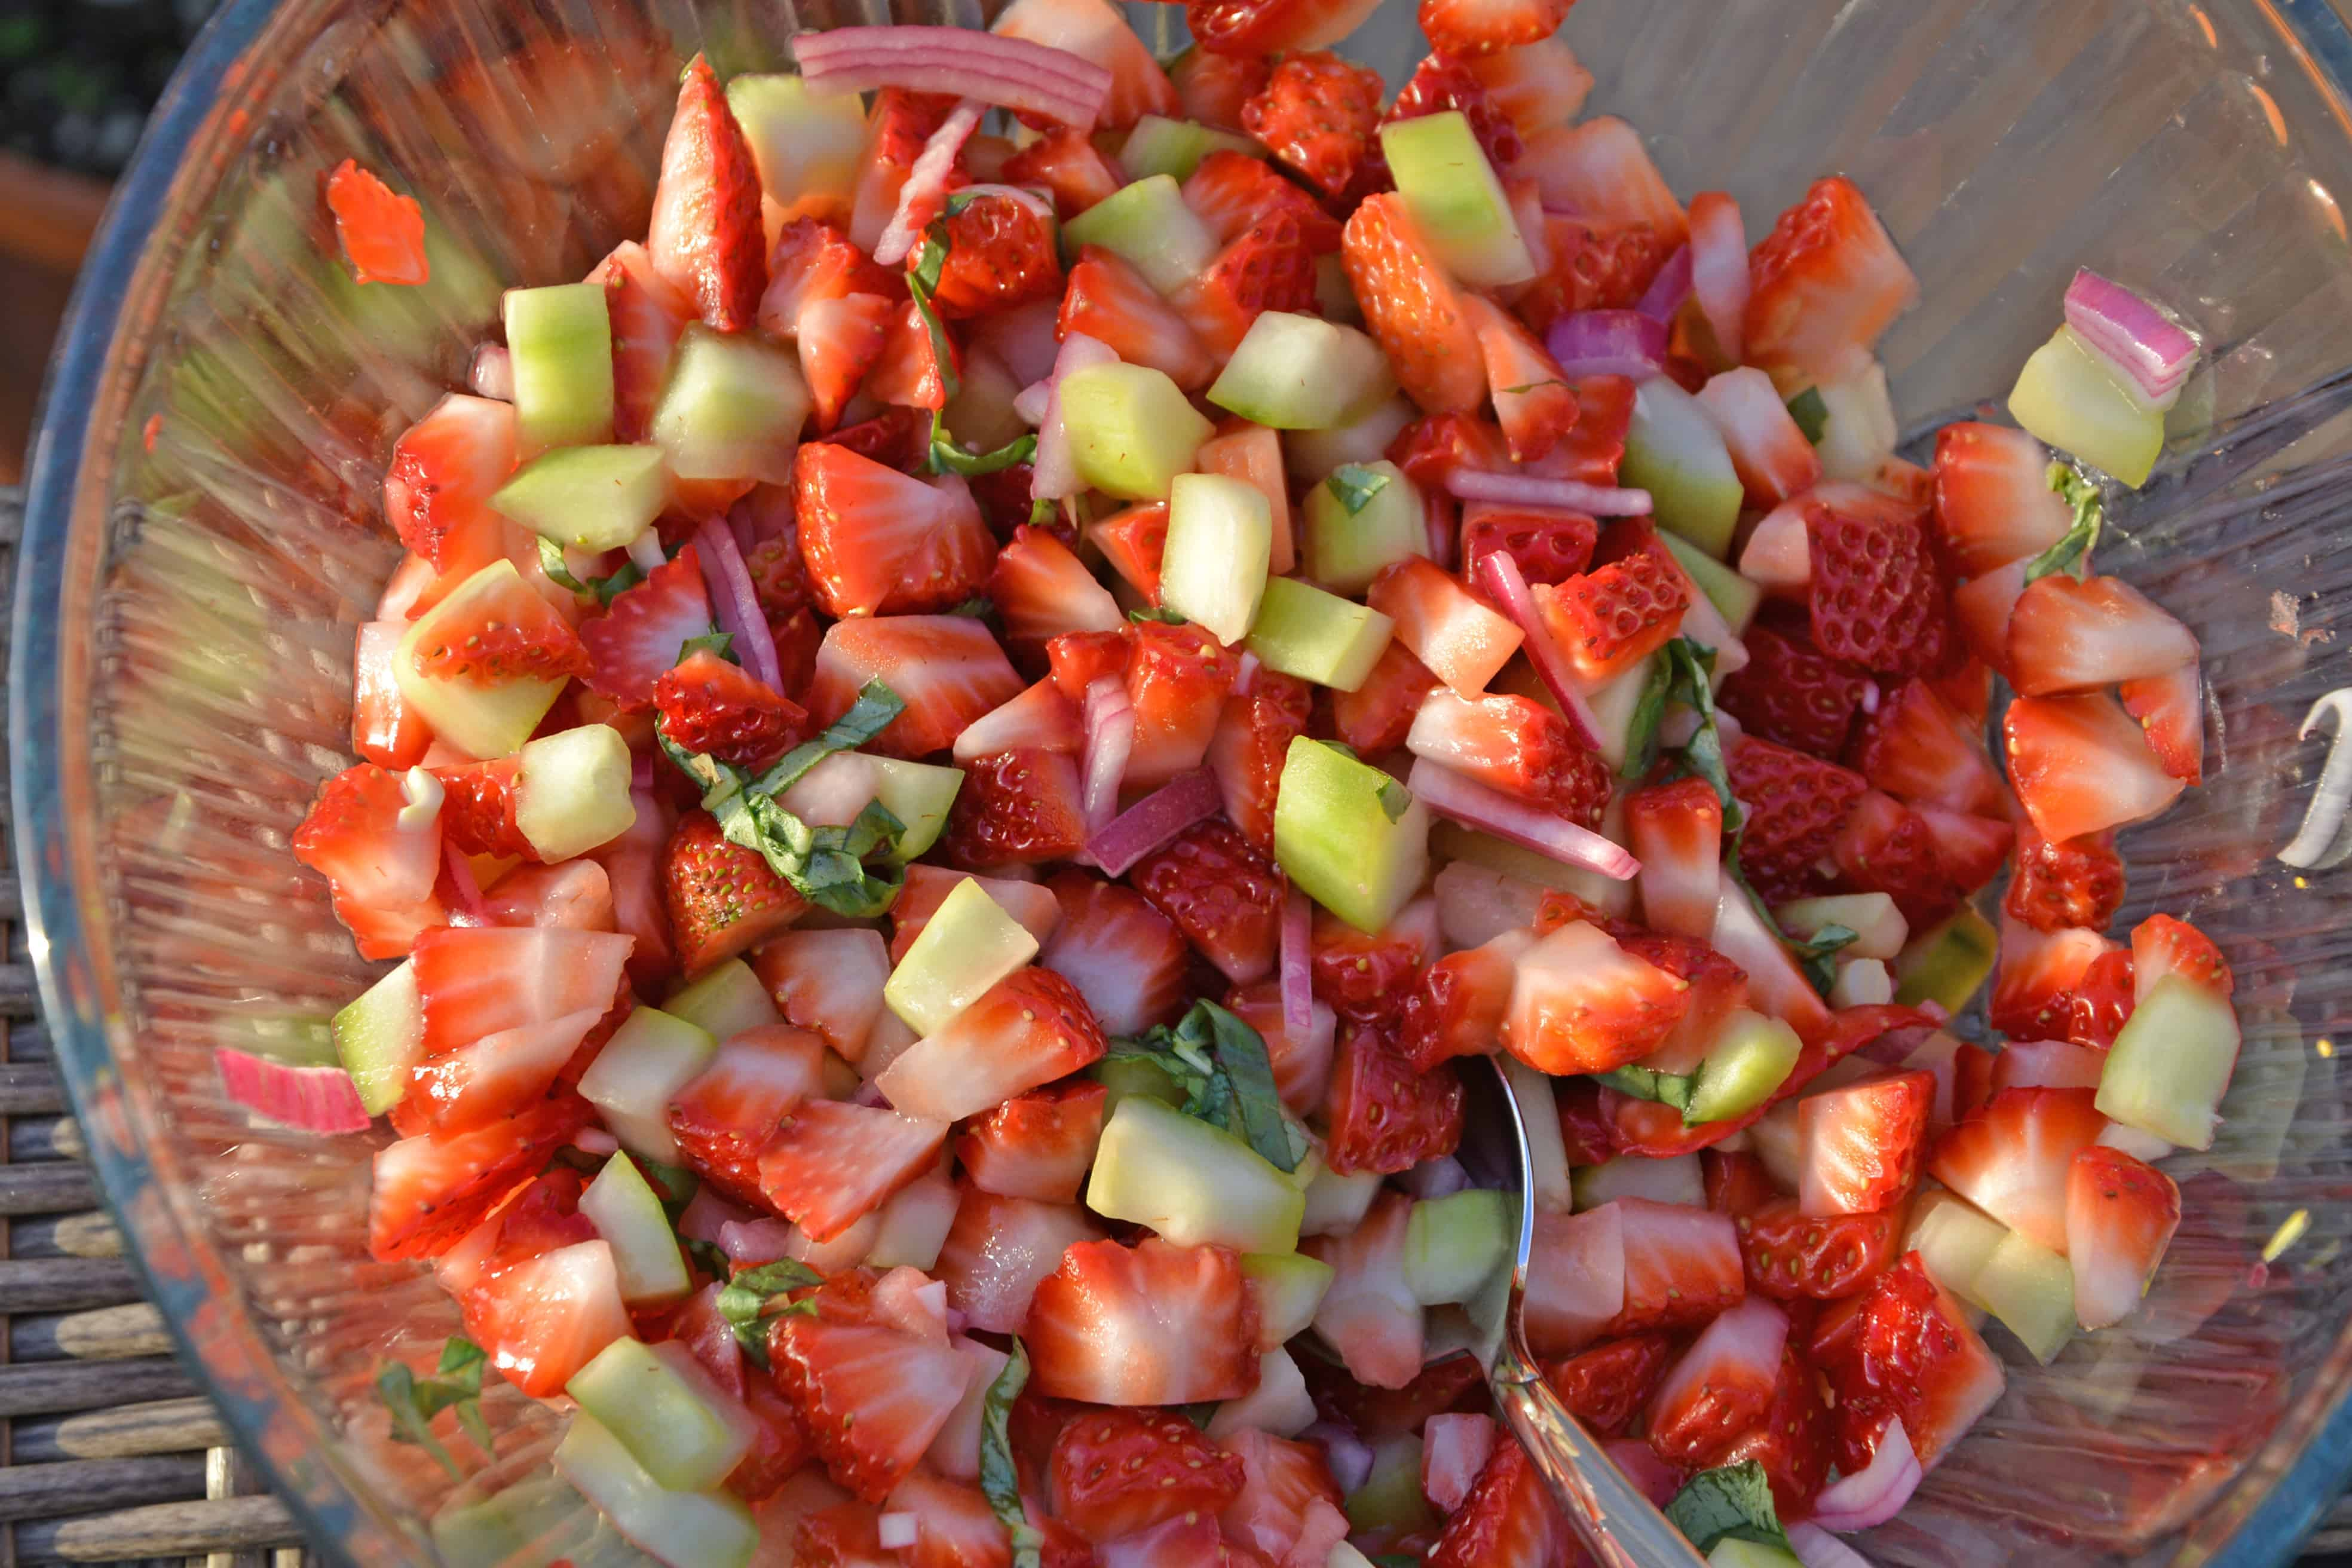 This Strawberry Salsa recipe uses sweet strawberries with cooling cucumber, red onion, basil and zesty white wine vinegar for a juicy dip or condiment. #homemadesalsa #fruitsalsa #strawberrysalsa www.savoryexperiments.com